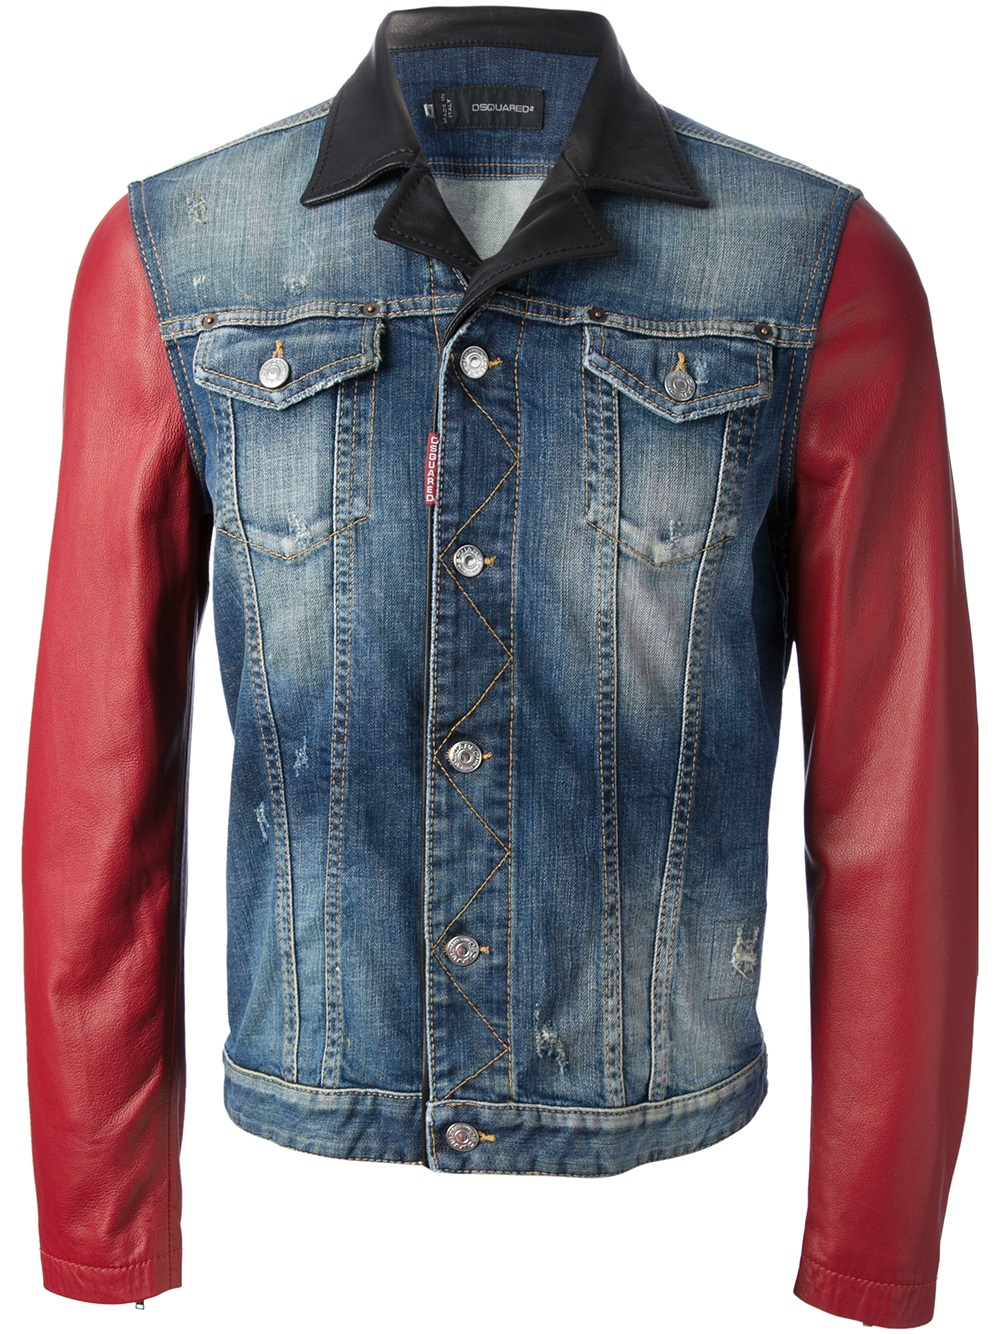 Lyst - DSquared² Contrast Sleeve Denim Jacket in Blue for Men 9c213a2bbfb3